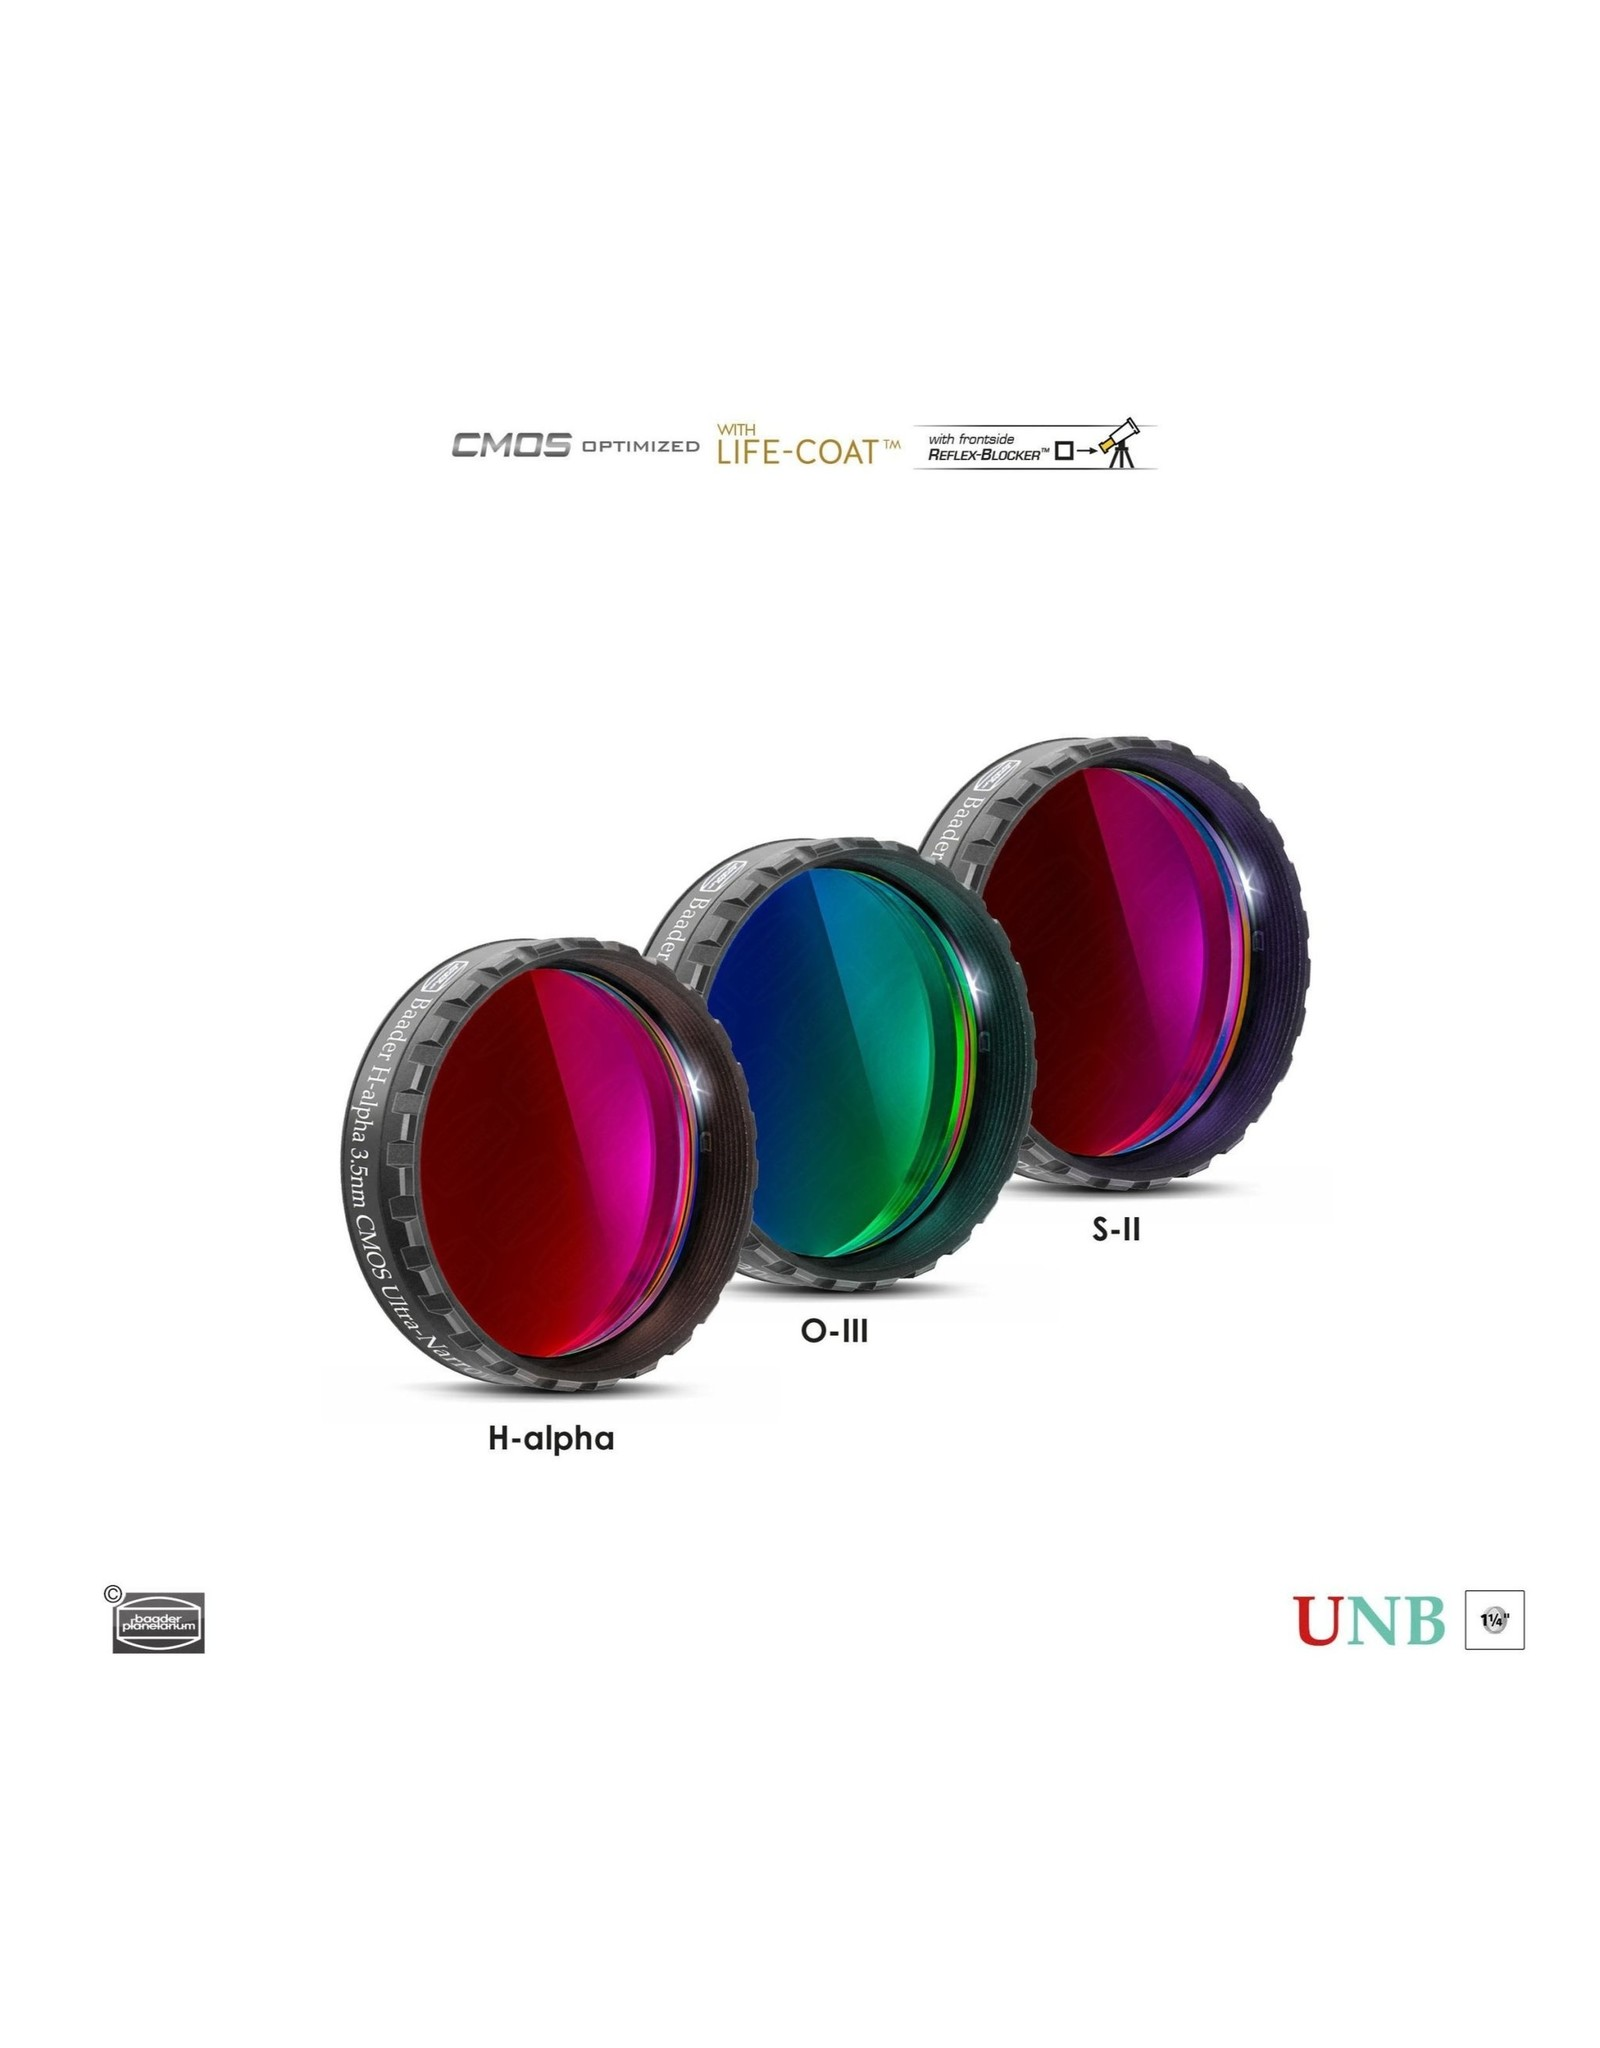 Baader Planetarium Baader 4nm Ultra-Narrowband Oxygen-III Filters – CMOS-optimized (Specify Size)